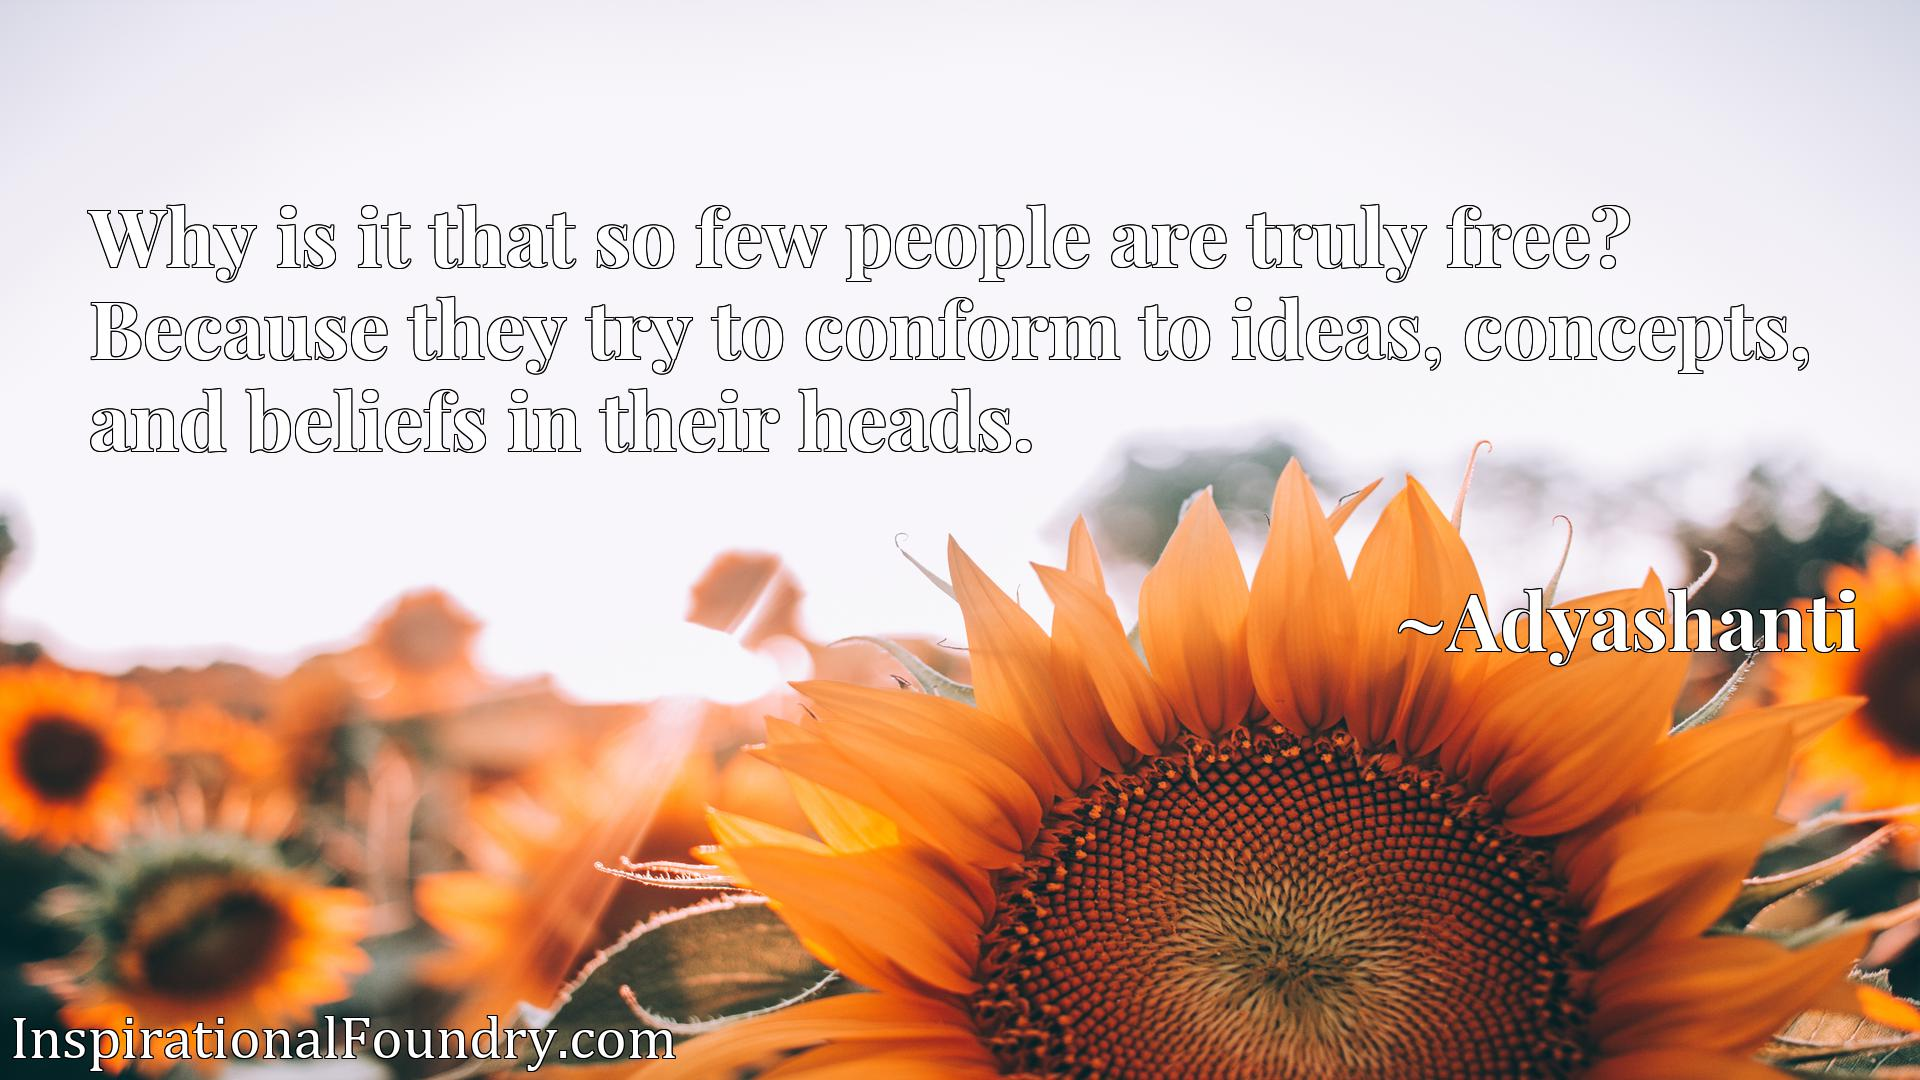 Why is it that so few people are truly free? Because they try to conform to ideas, concepts, and beliefs in their heads.